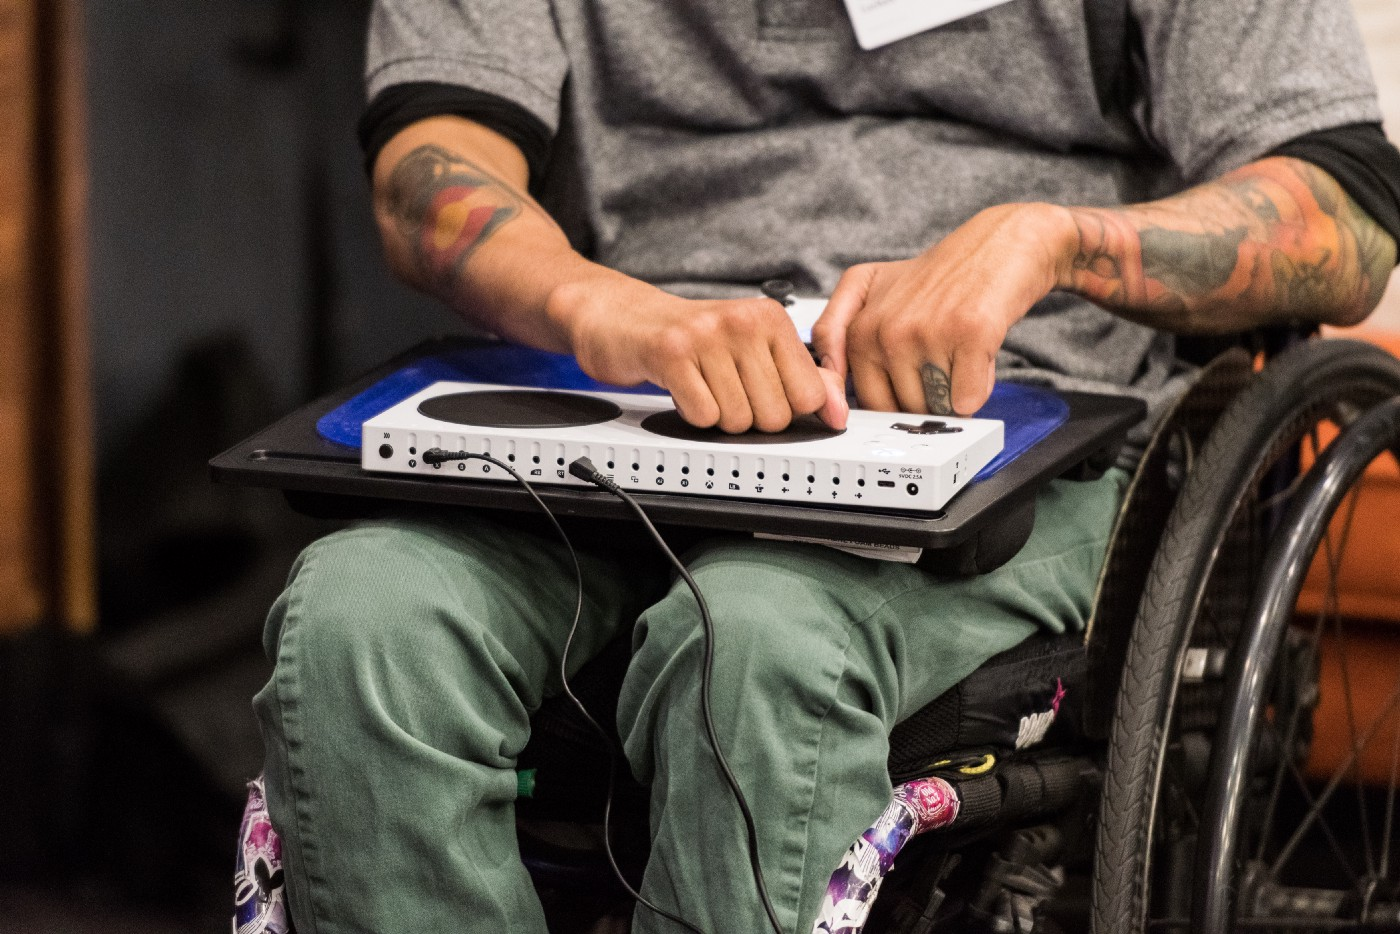 Figure 2: Person in a wheelchair with a Microsoft Accessibility Controller (Fleming, 2019)